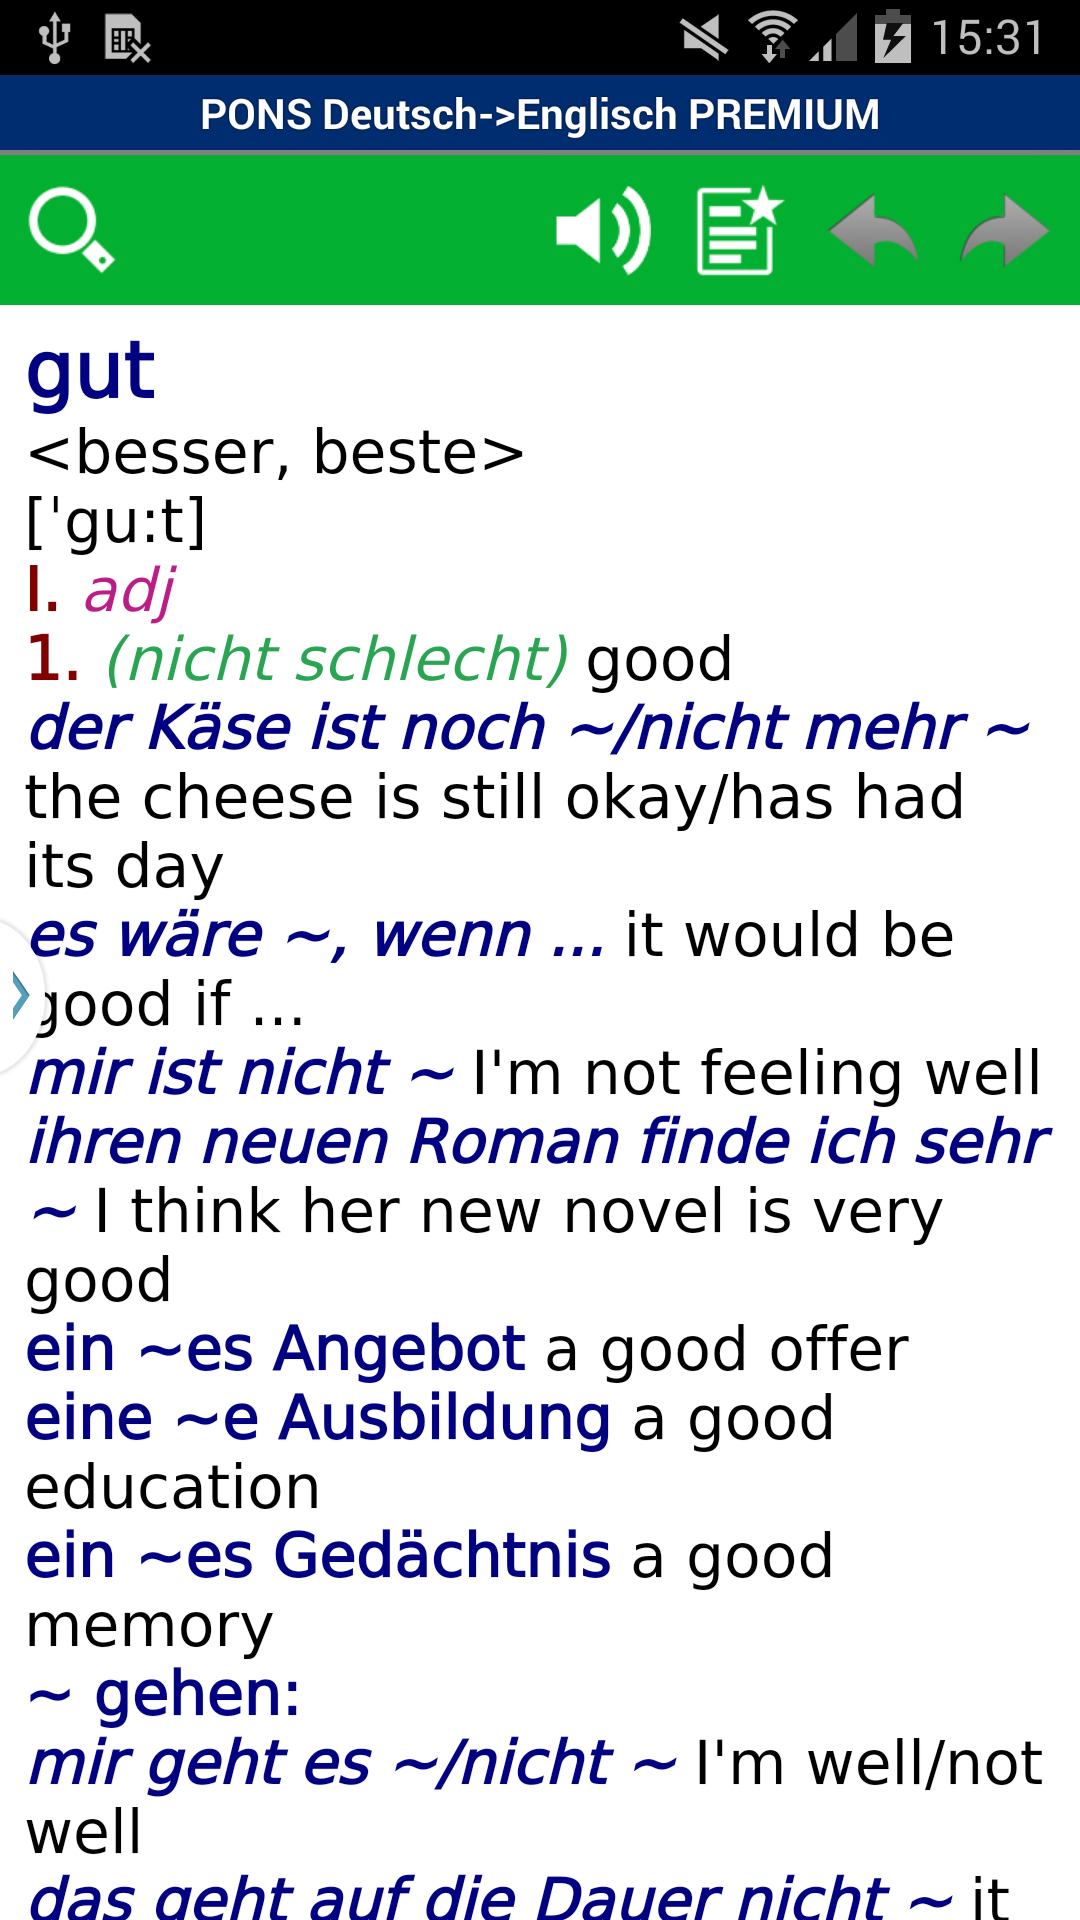 best german english dictionary software